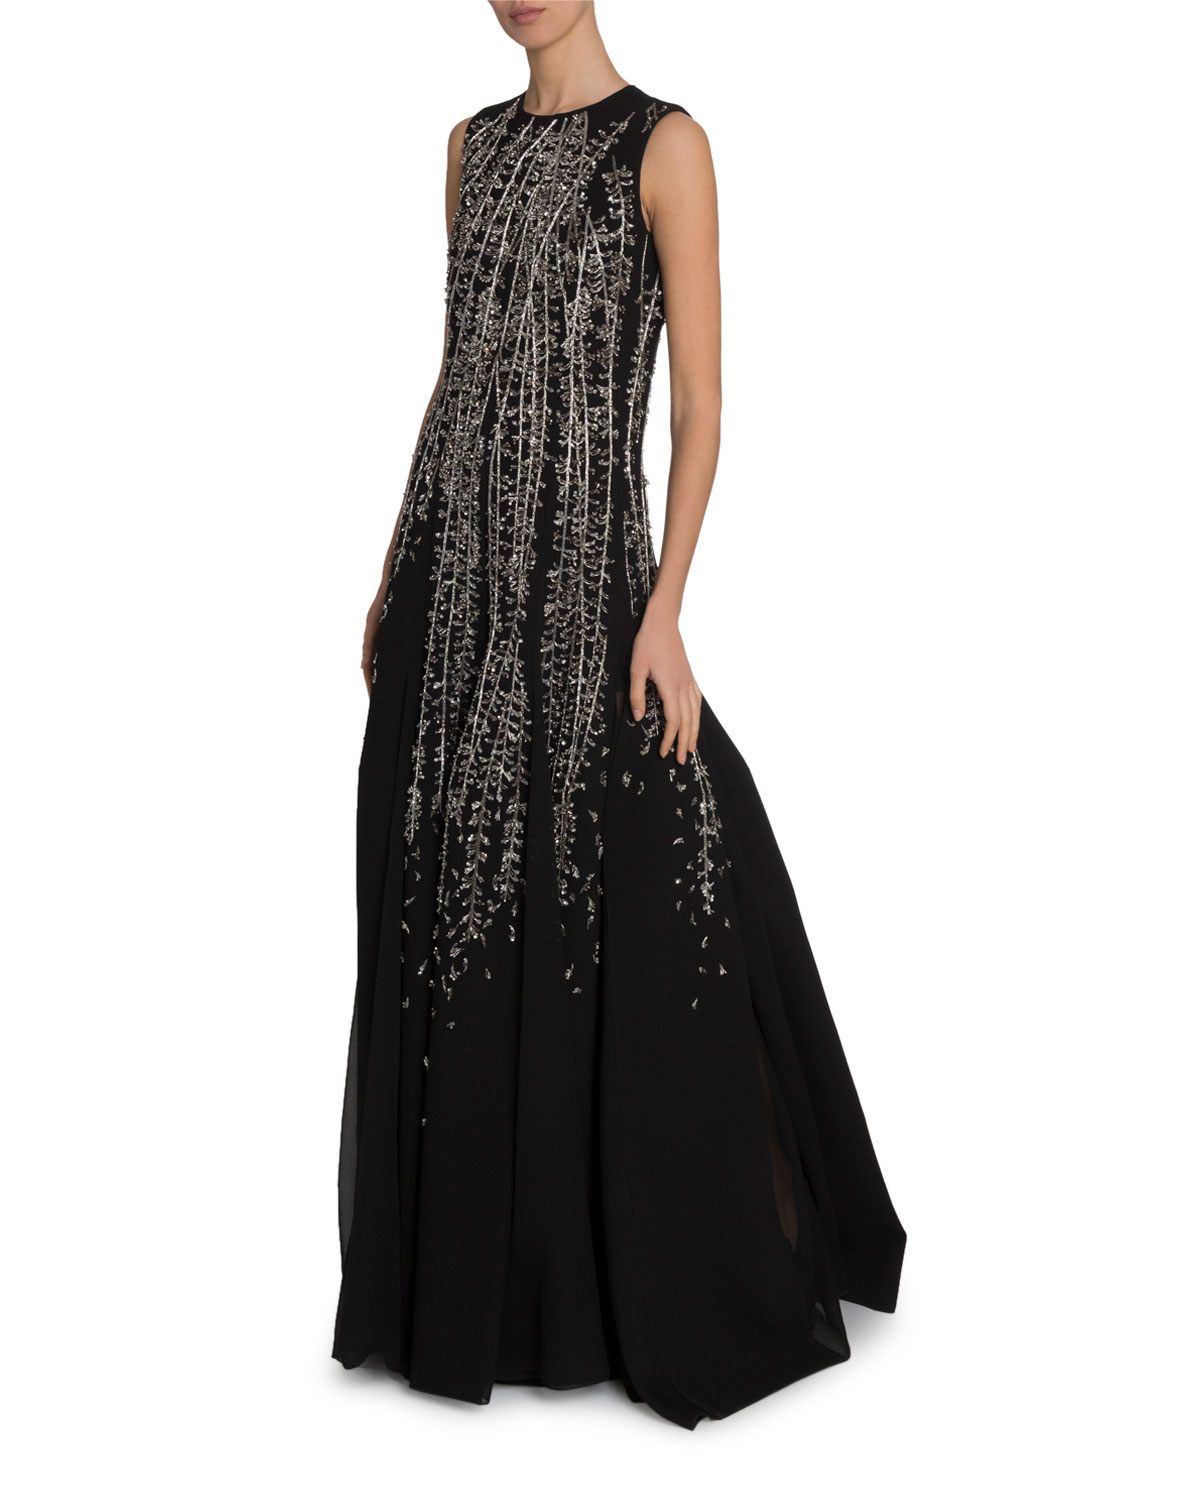 Givenchy Crystal Embroidered Sleeveless Gown In Black/Silver